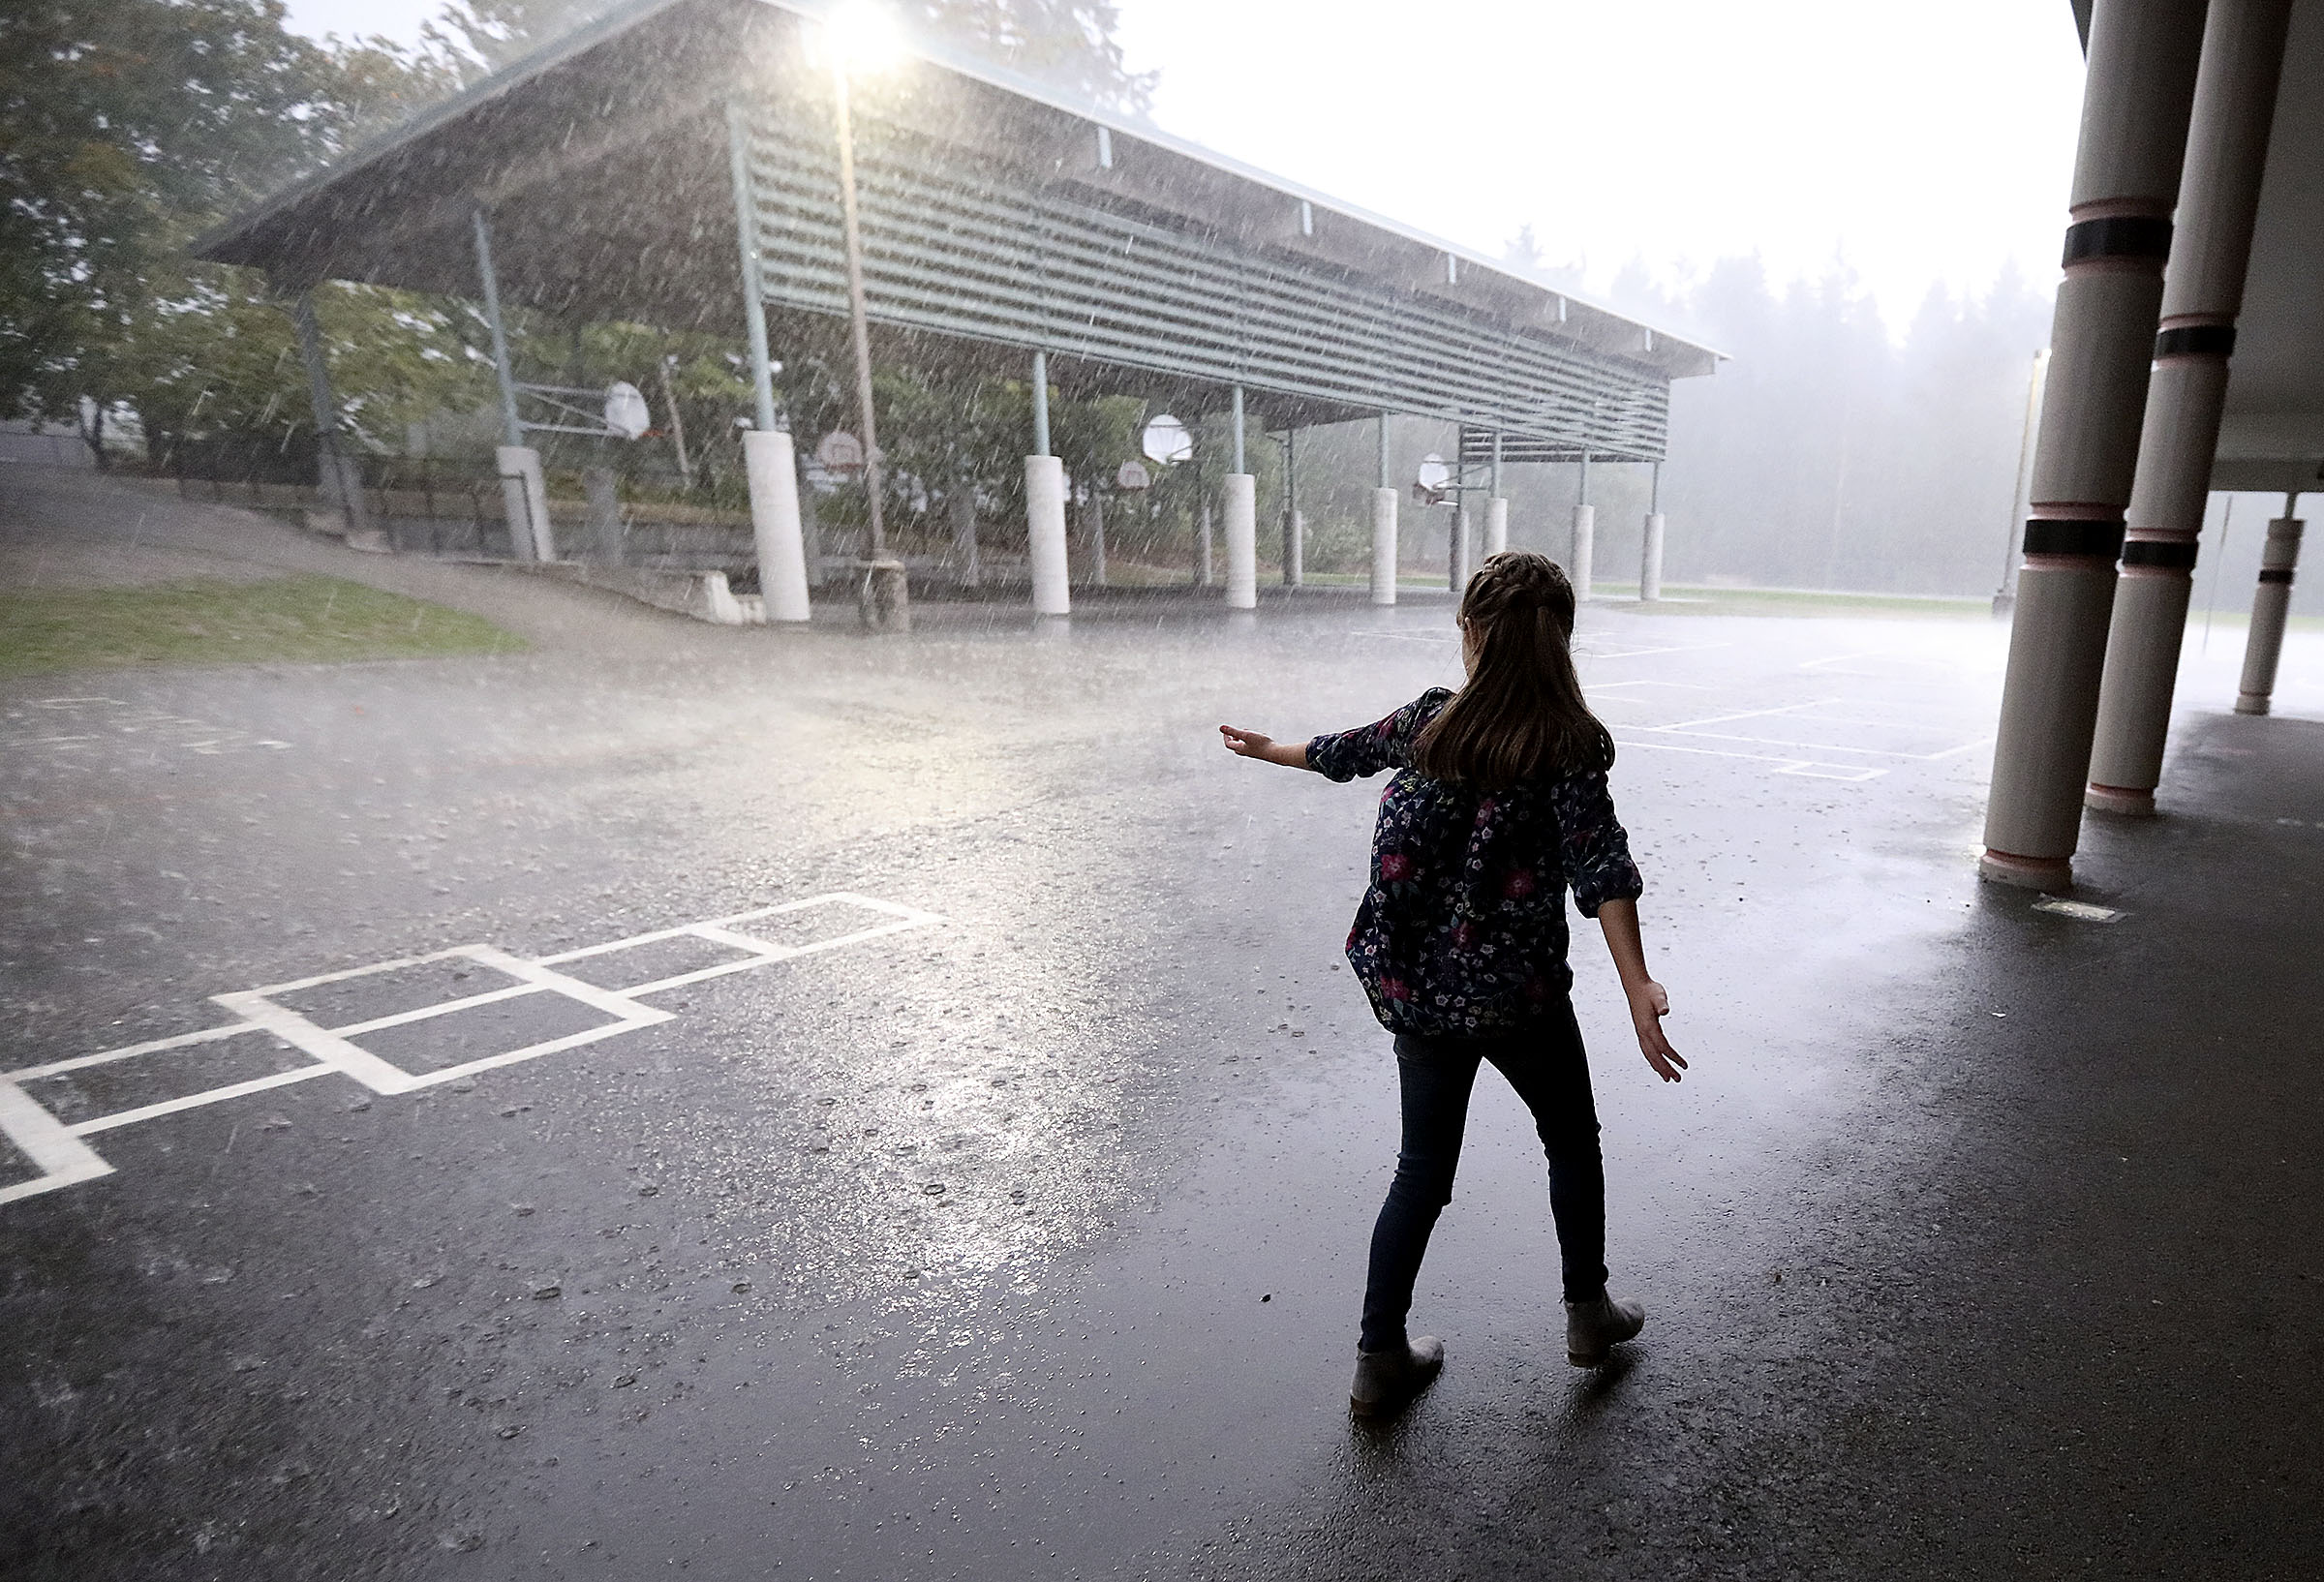 Emilia Allen watches a heavy rainfall near her home in Renton, Wash., on Friday, Sept. 14, 2018.